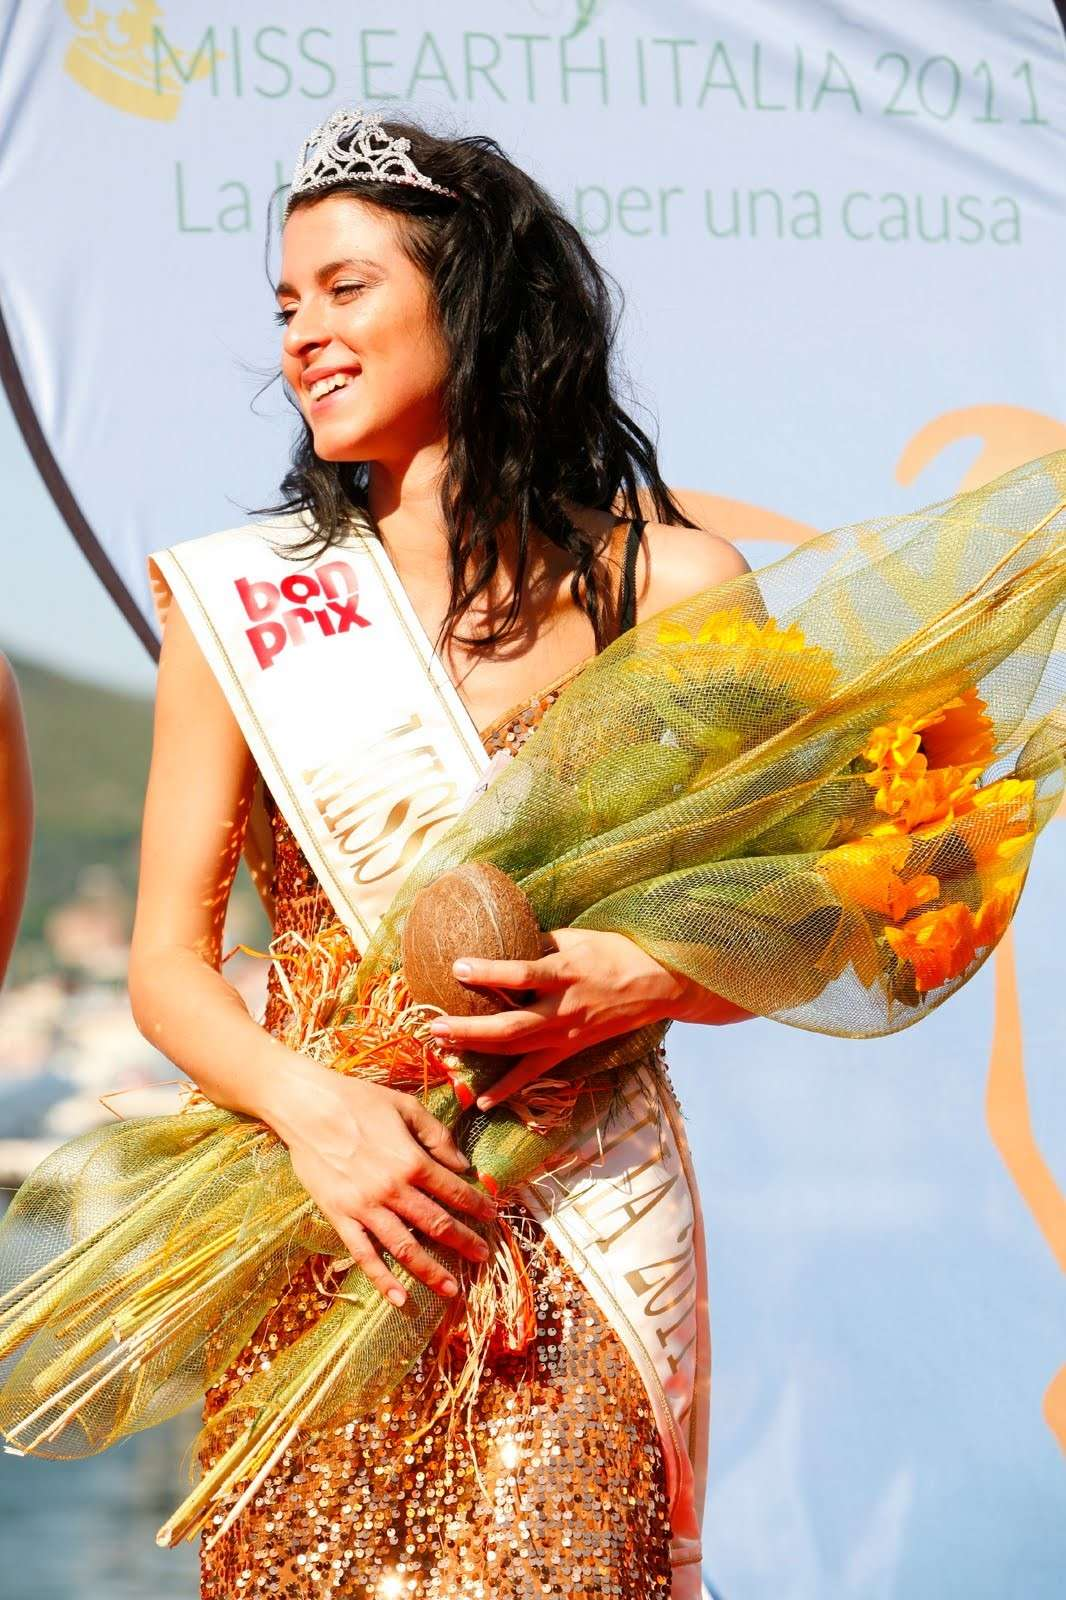 angelica parisi,miss earth italy 2011,miss italy earth 2011